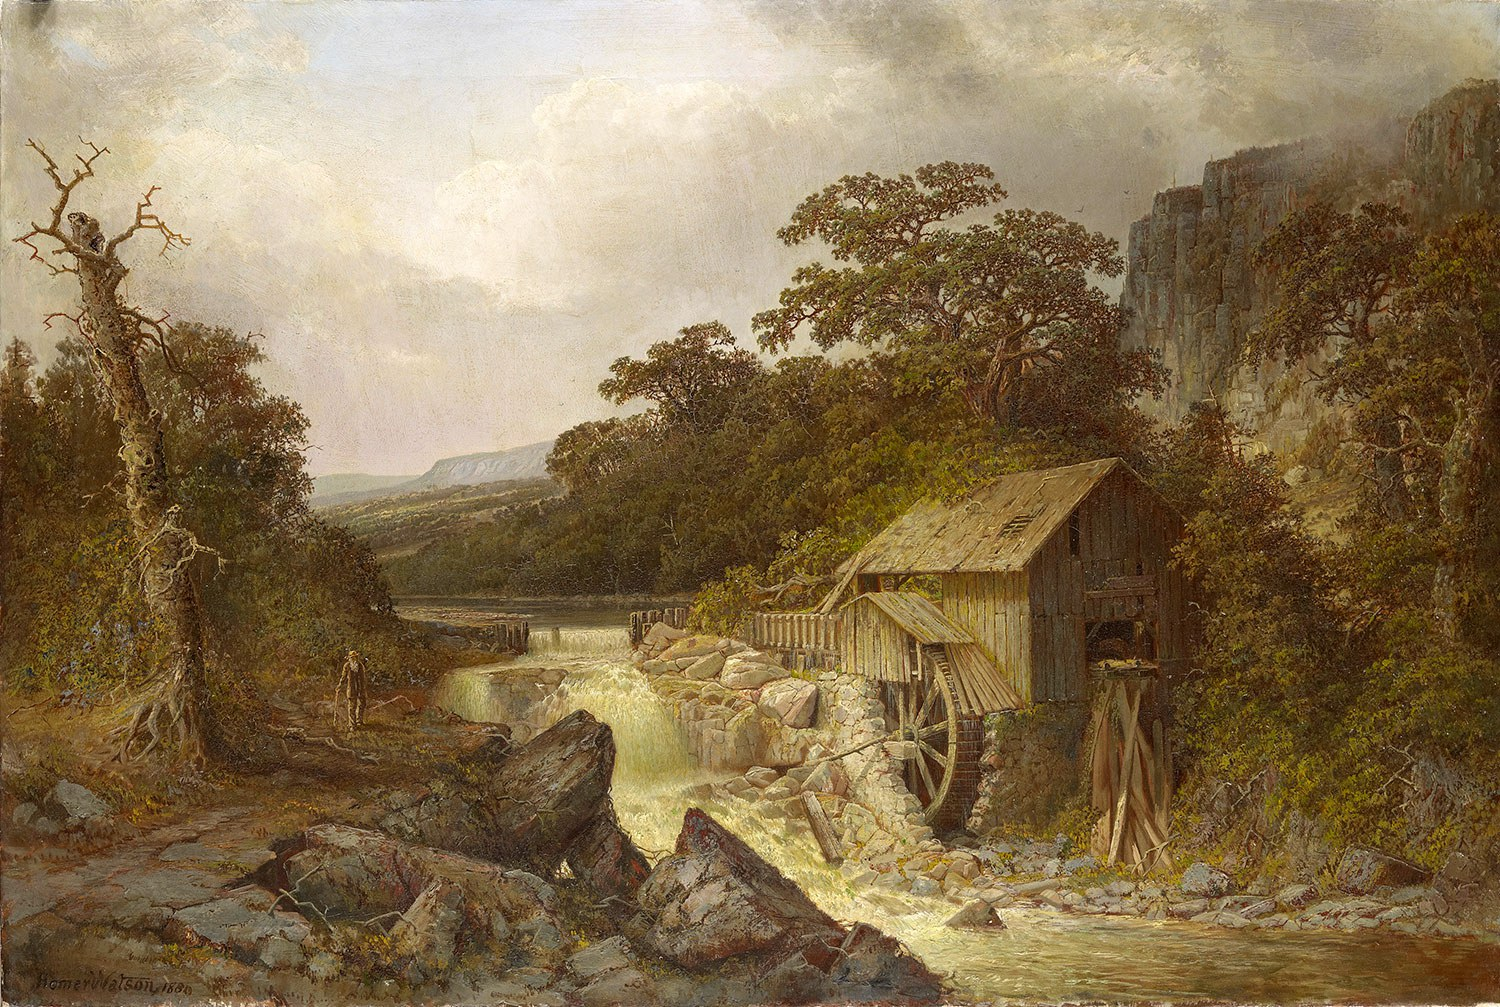 The Pioneer Mill, 1880, by Homer Watson, oil on canvas, 86 x 127 cm, Royal Collection (Photo: Royal Collection Trust/© HM Queen Elizabeth II 2012)